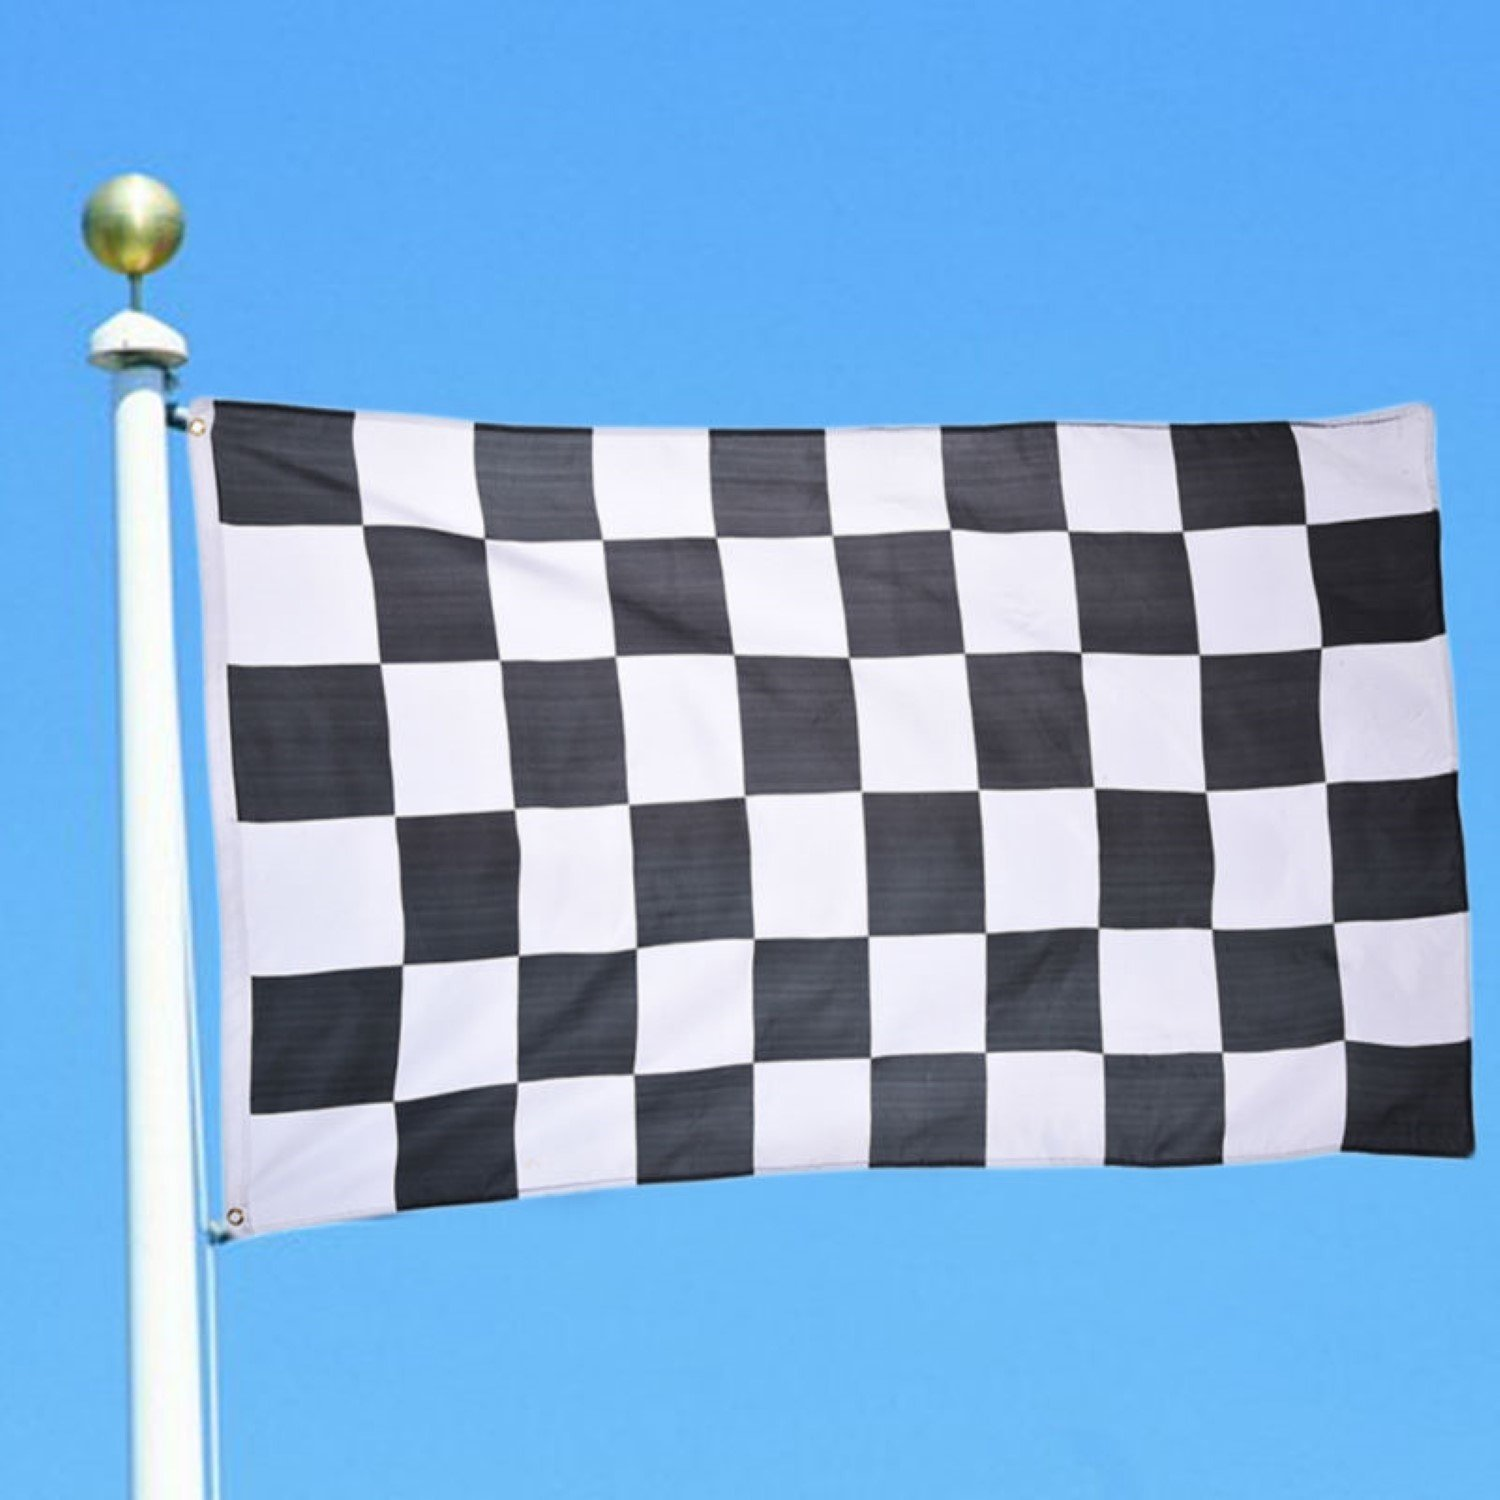 Finish Line Flag 90x150 cm NEW - Competition flag 90 x 150 flag 100% poliester Adatech